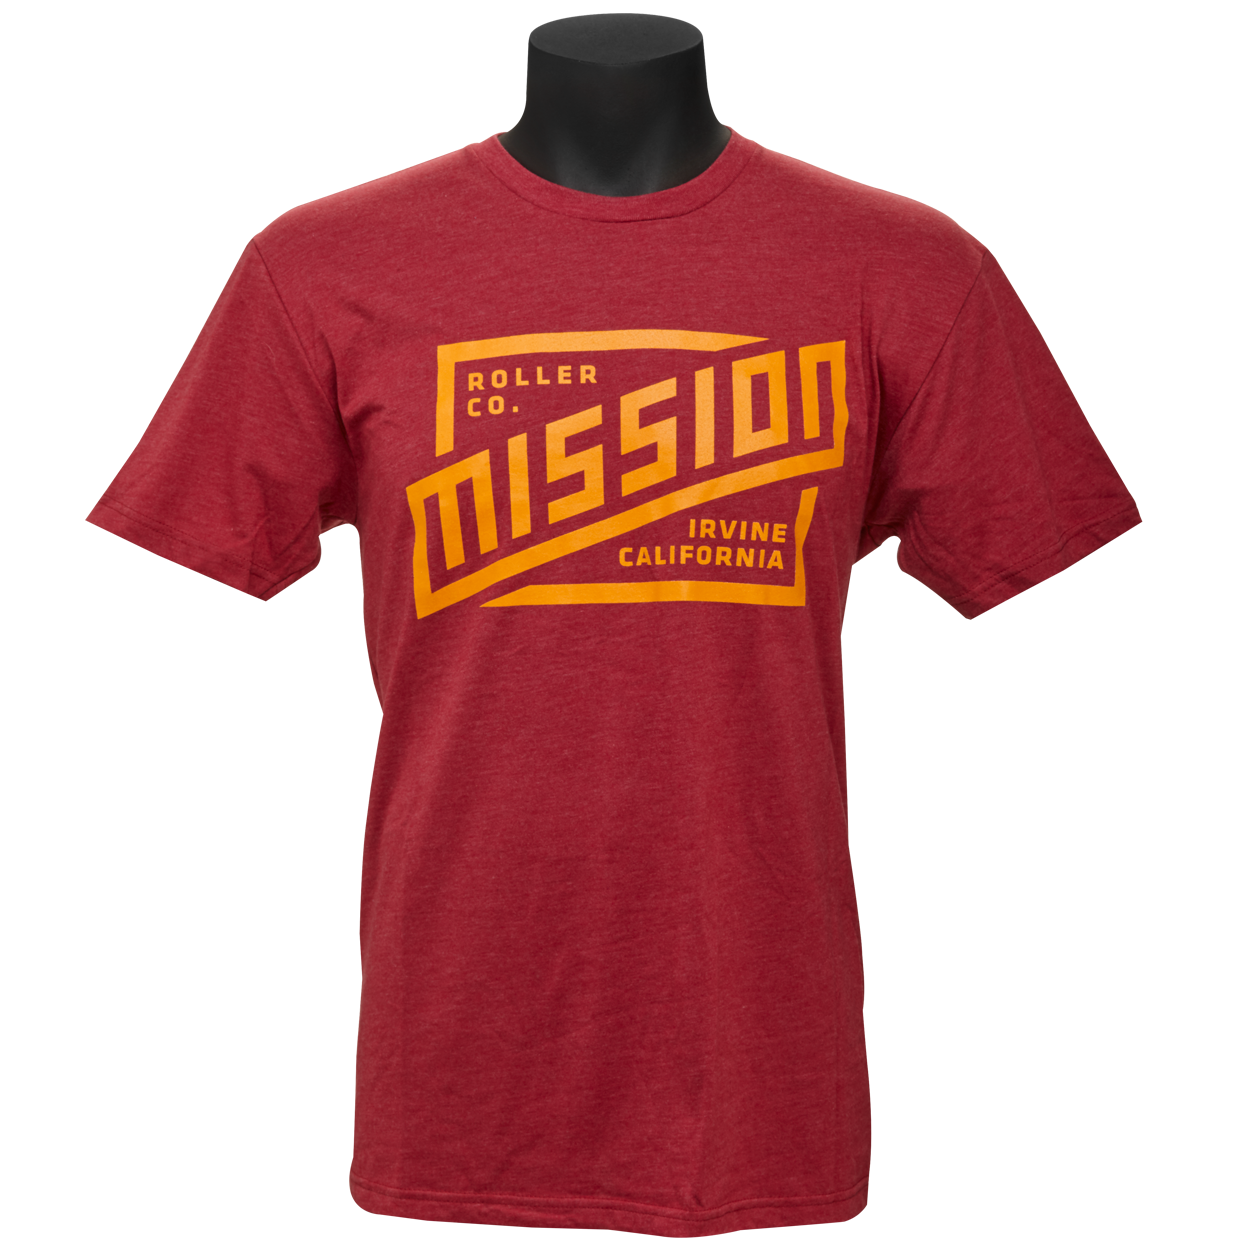 MISSION Lincoln T-Shirt Senior,,Размер M